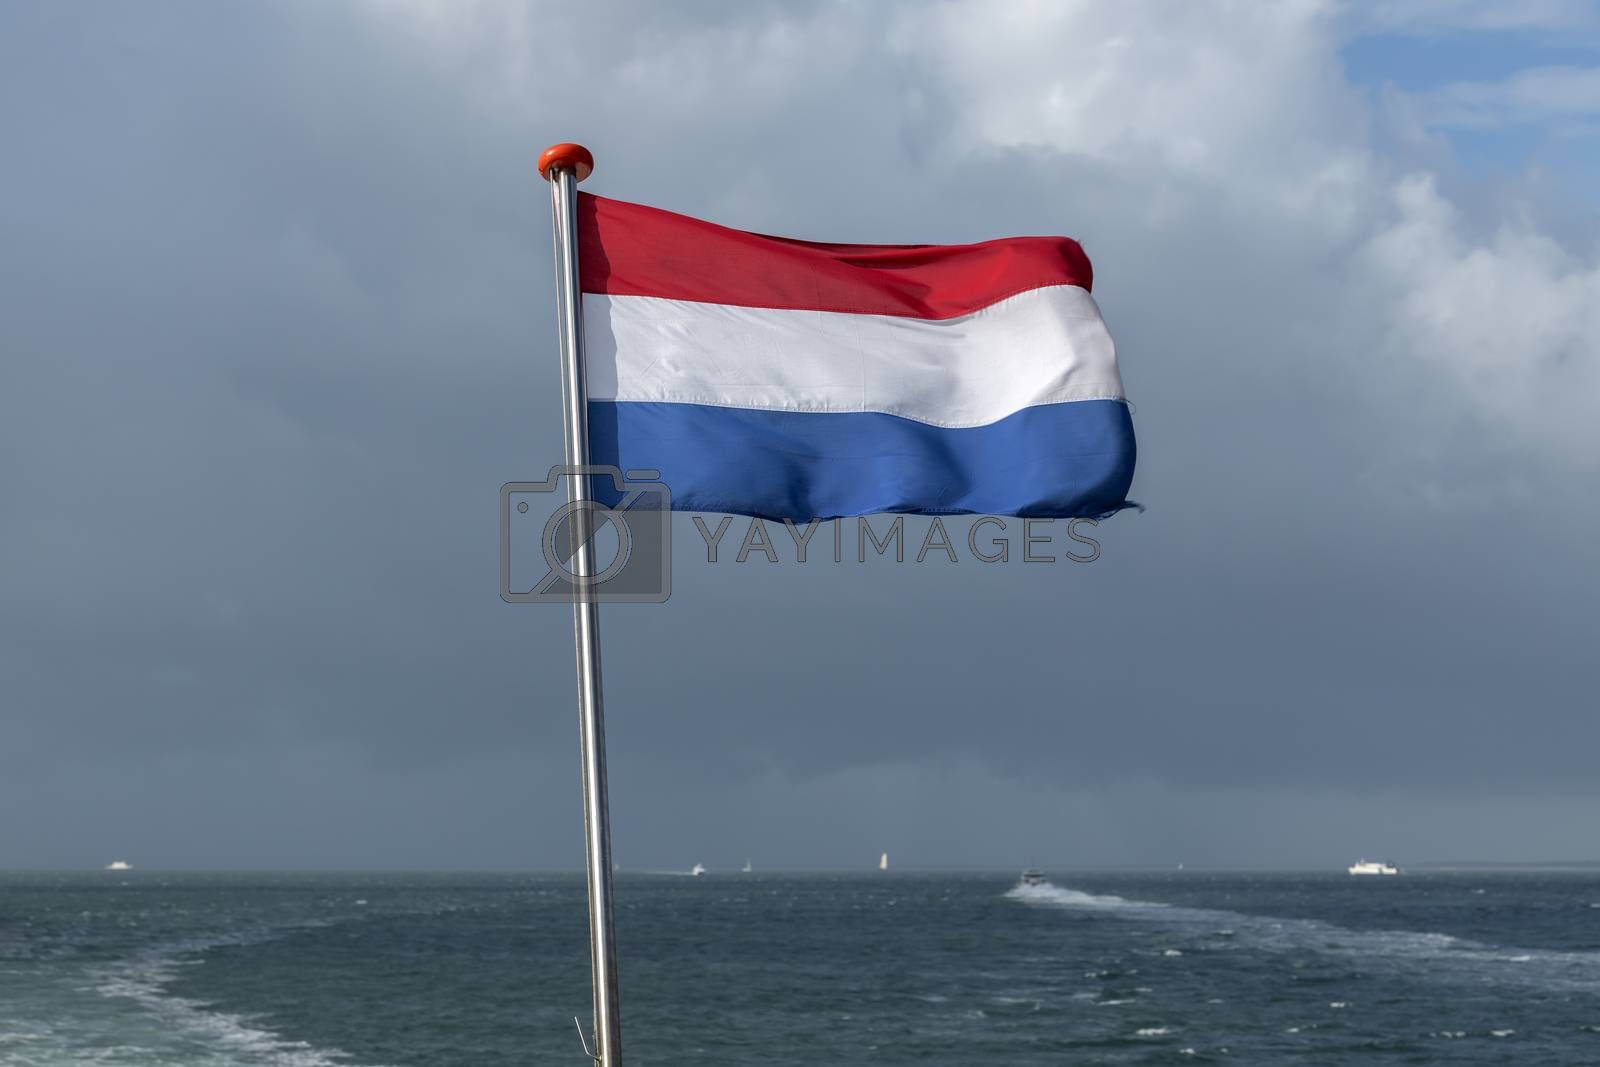 Wadden Sea with red white blue Dutch flag and ships in the background